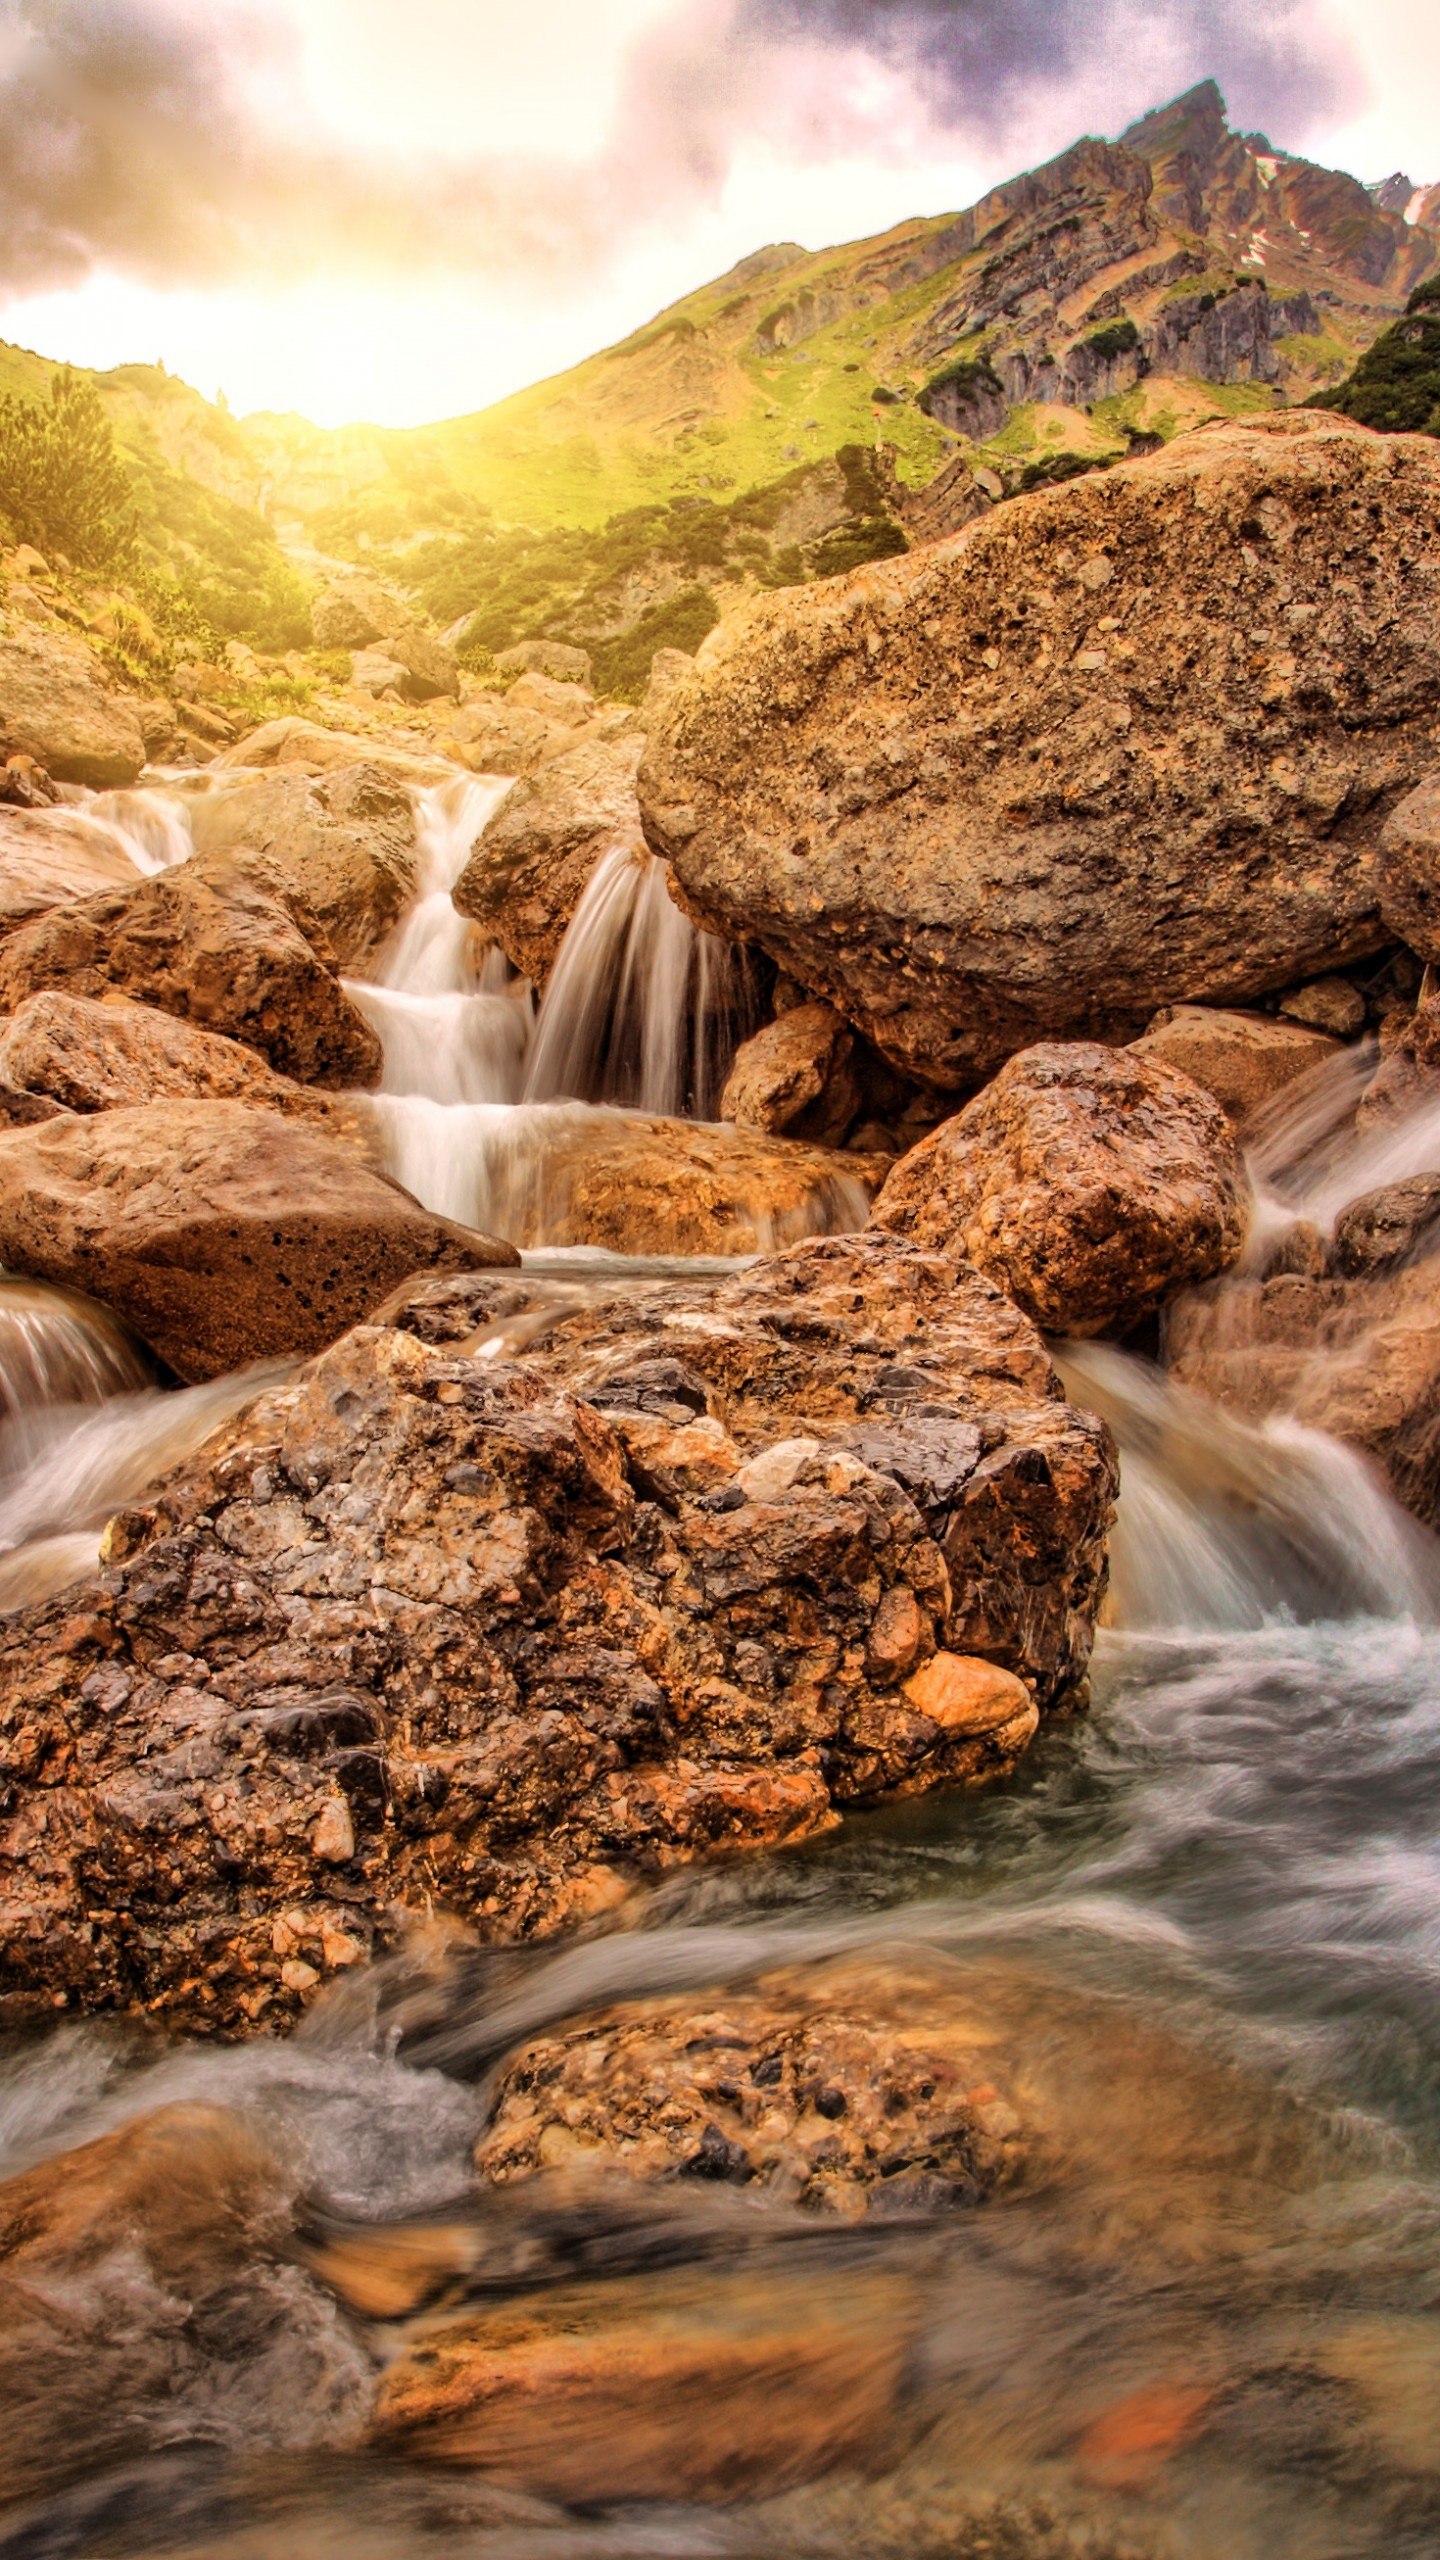 Nature Background Images For Editing 1440x2560 Download Hd Wallpaper Wallpapertip